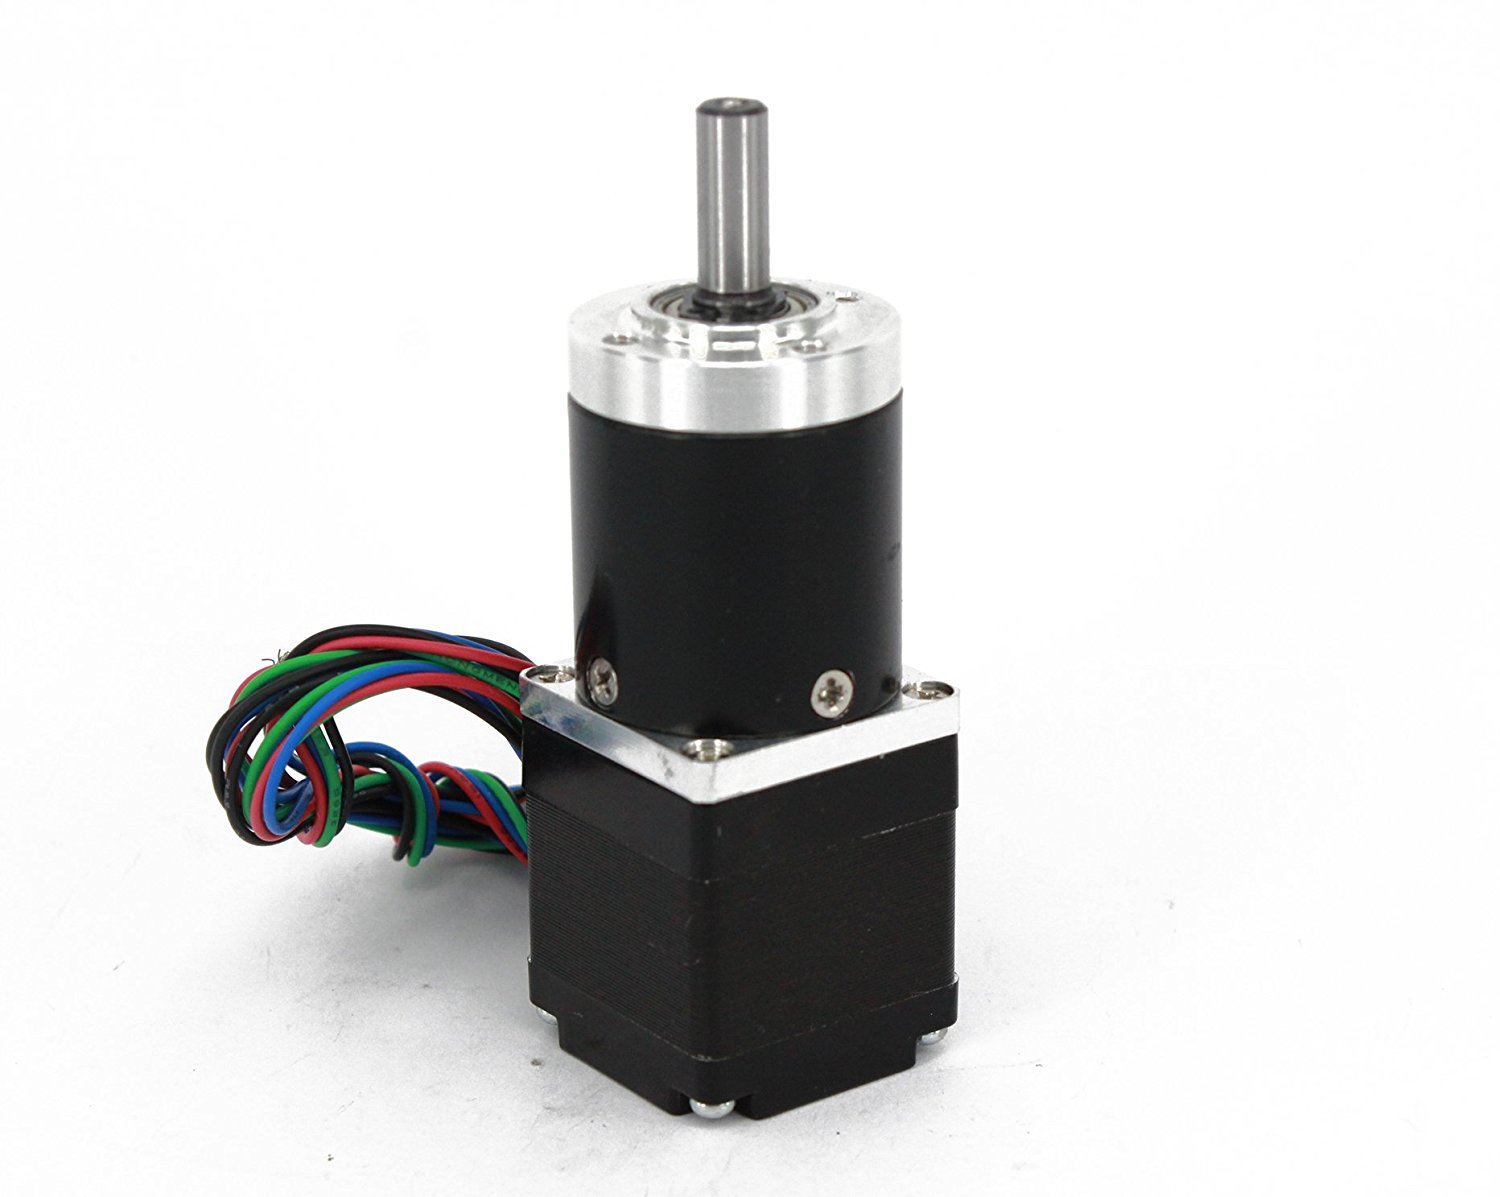 Gear Stepper Motor Nema 11 L=30mm with Planetary Gearbox Ratio 9~20:1 (Ratio 20:1)